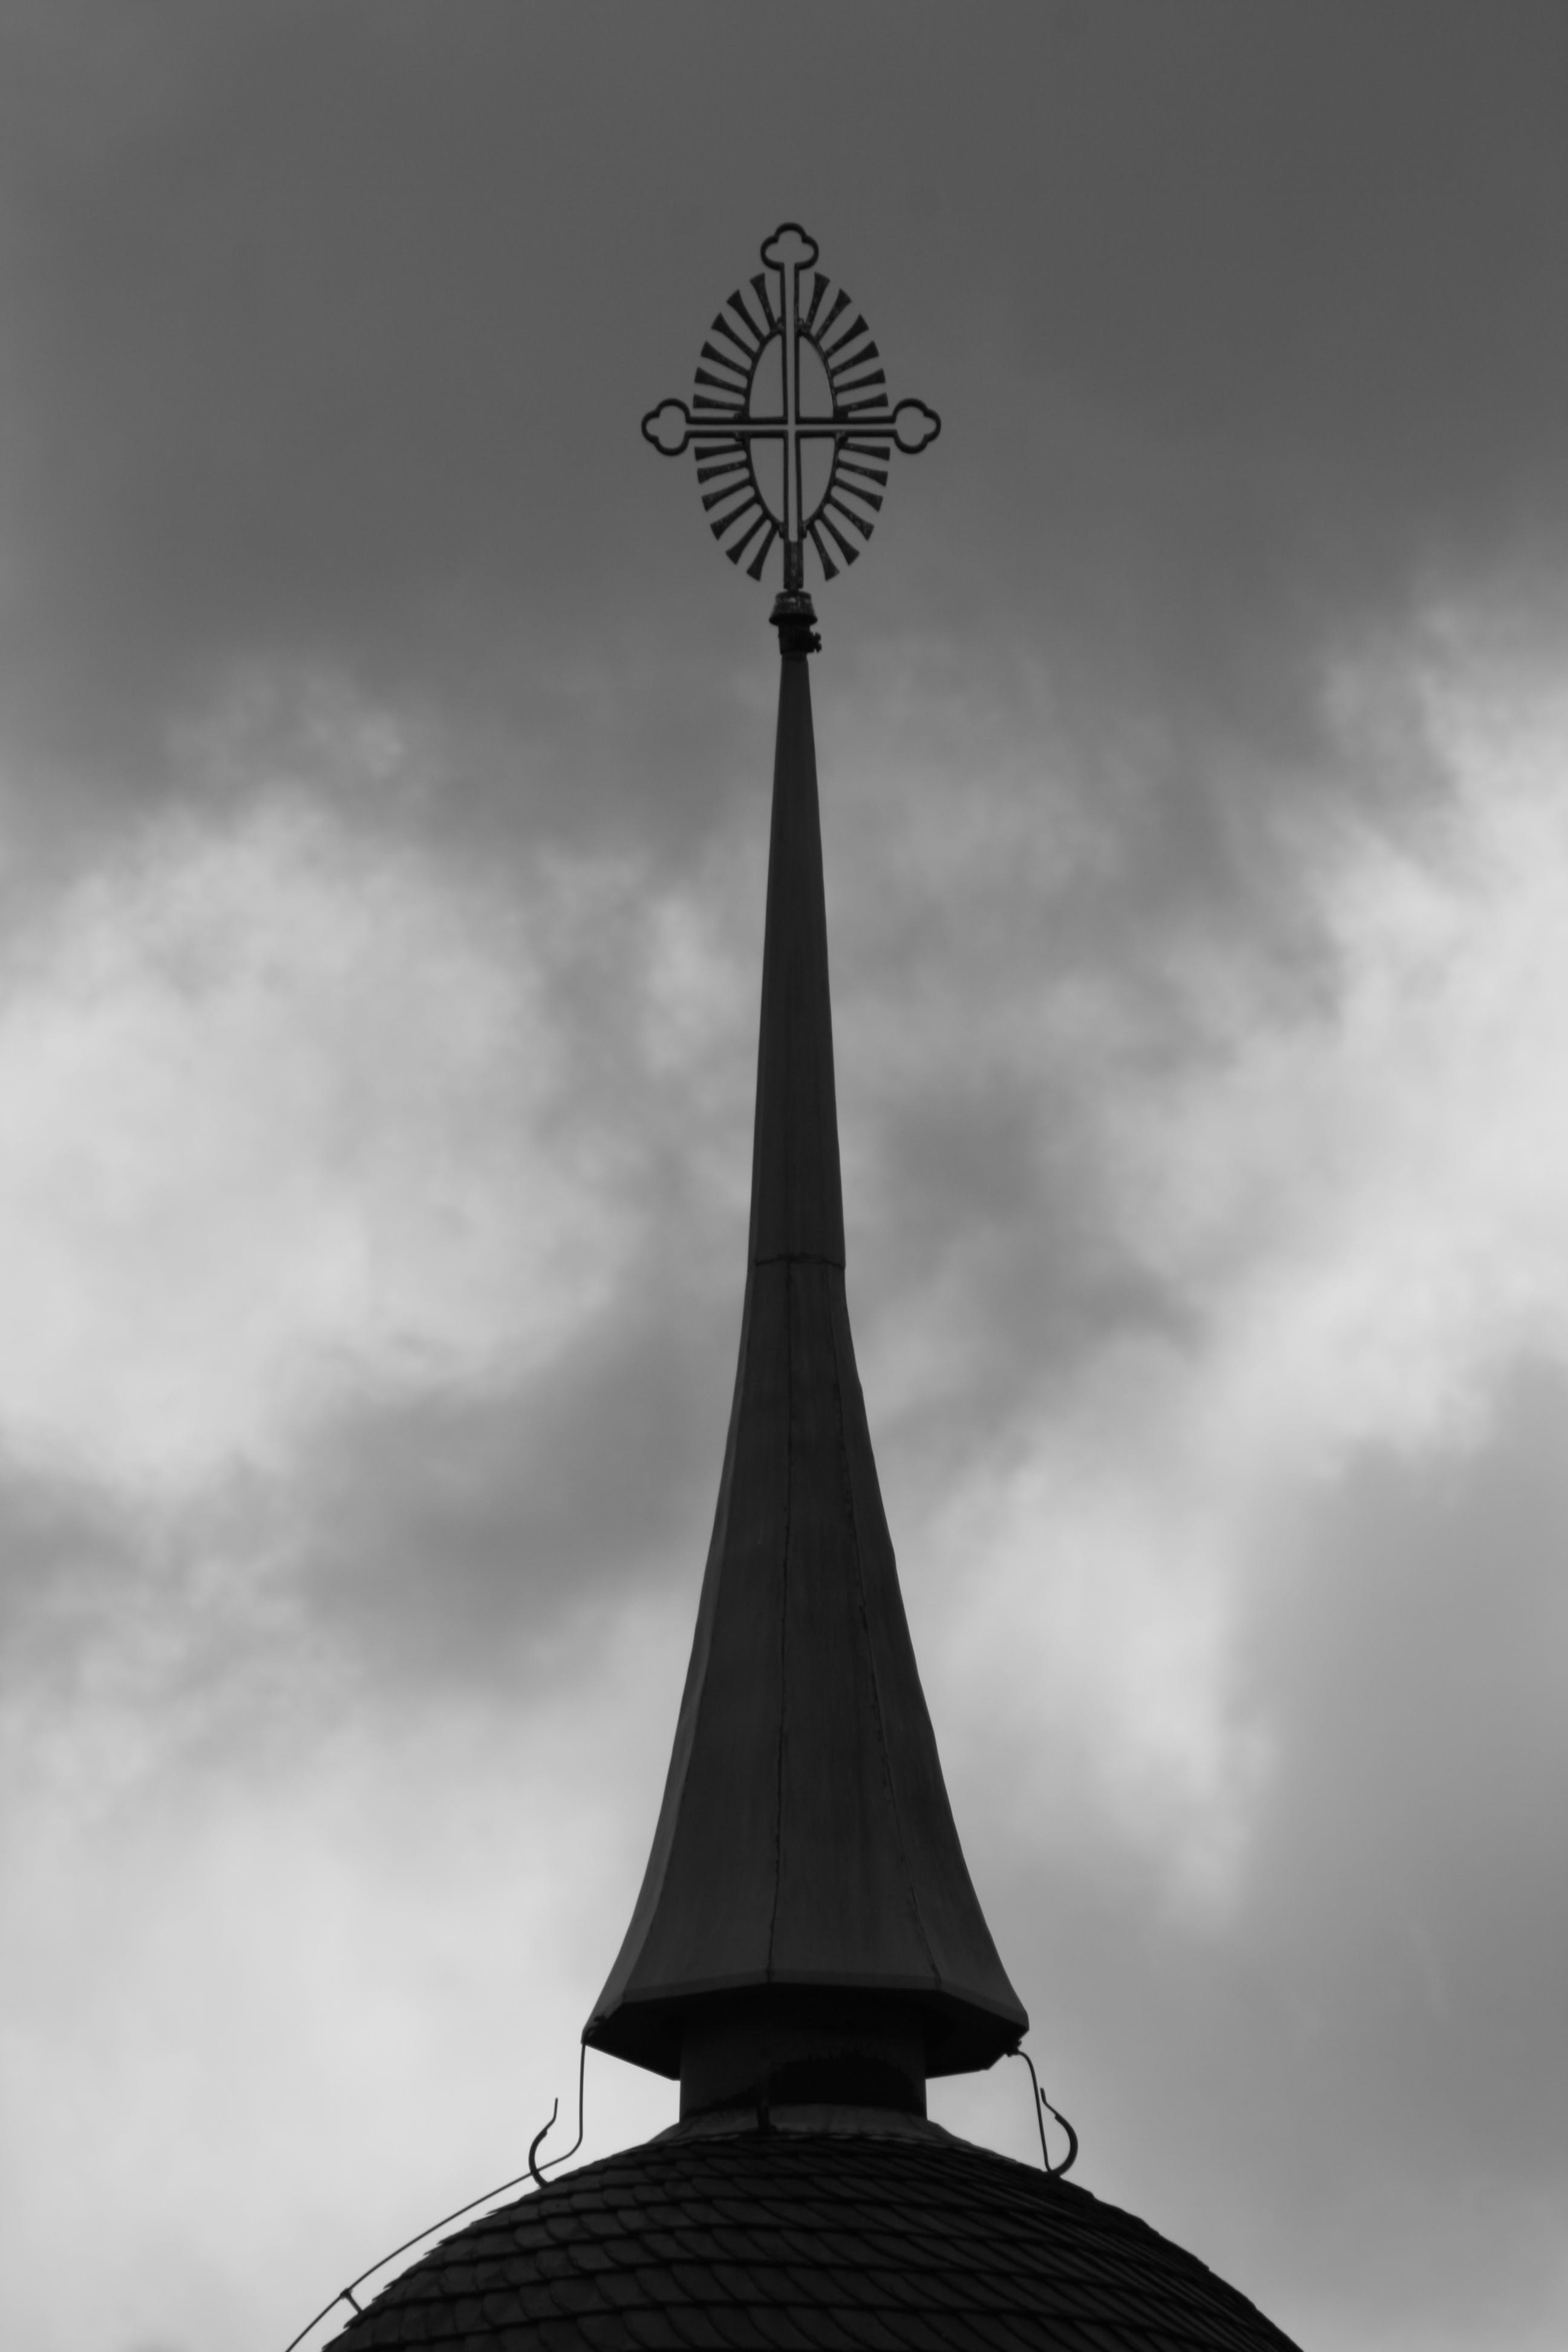 Free stock photo of black-and-white, church, cross, rooftop